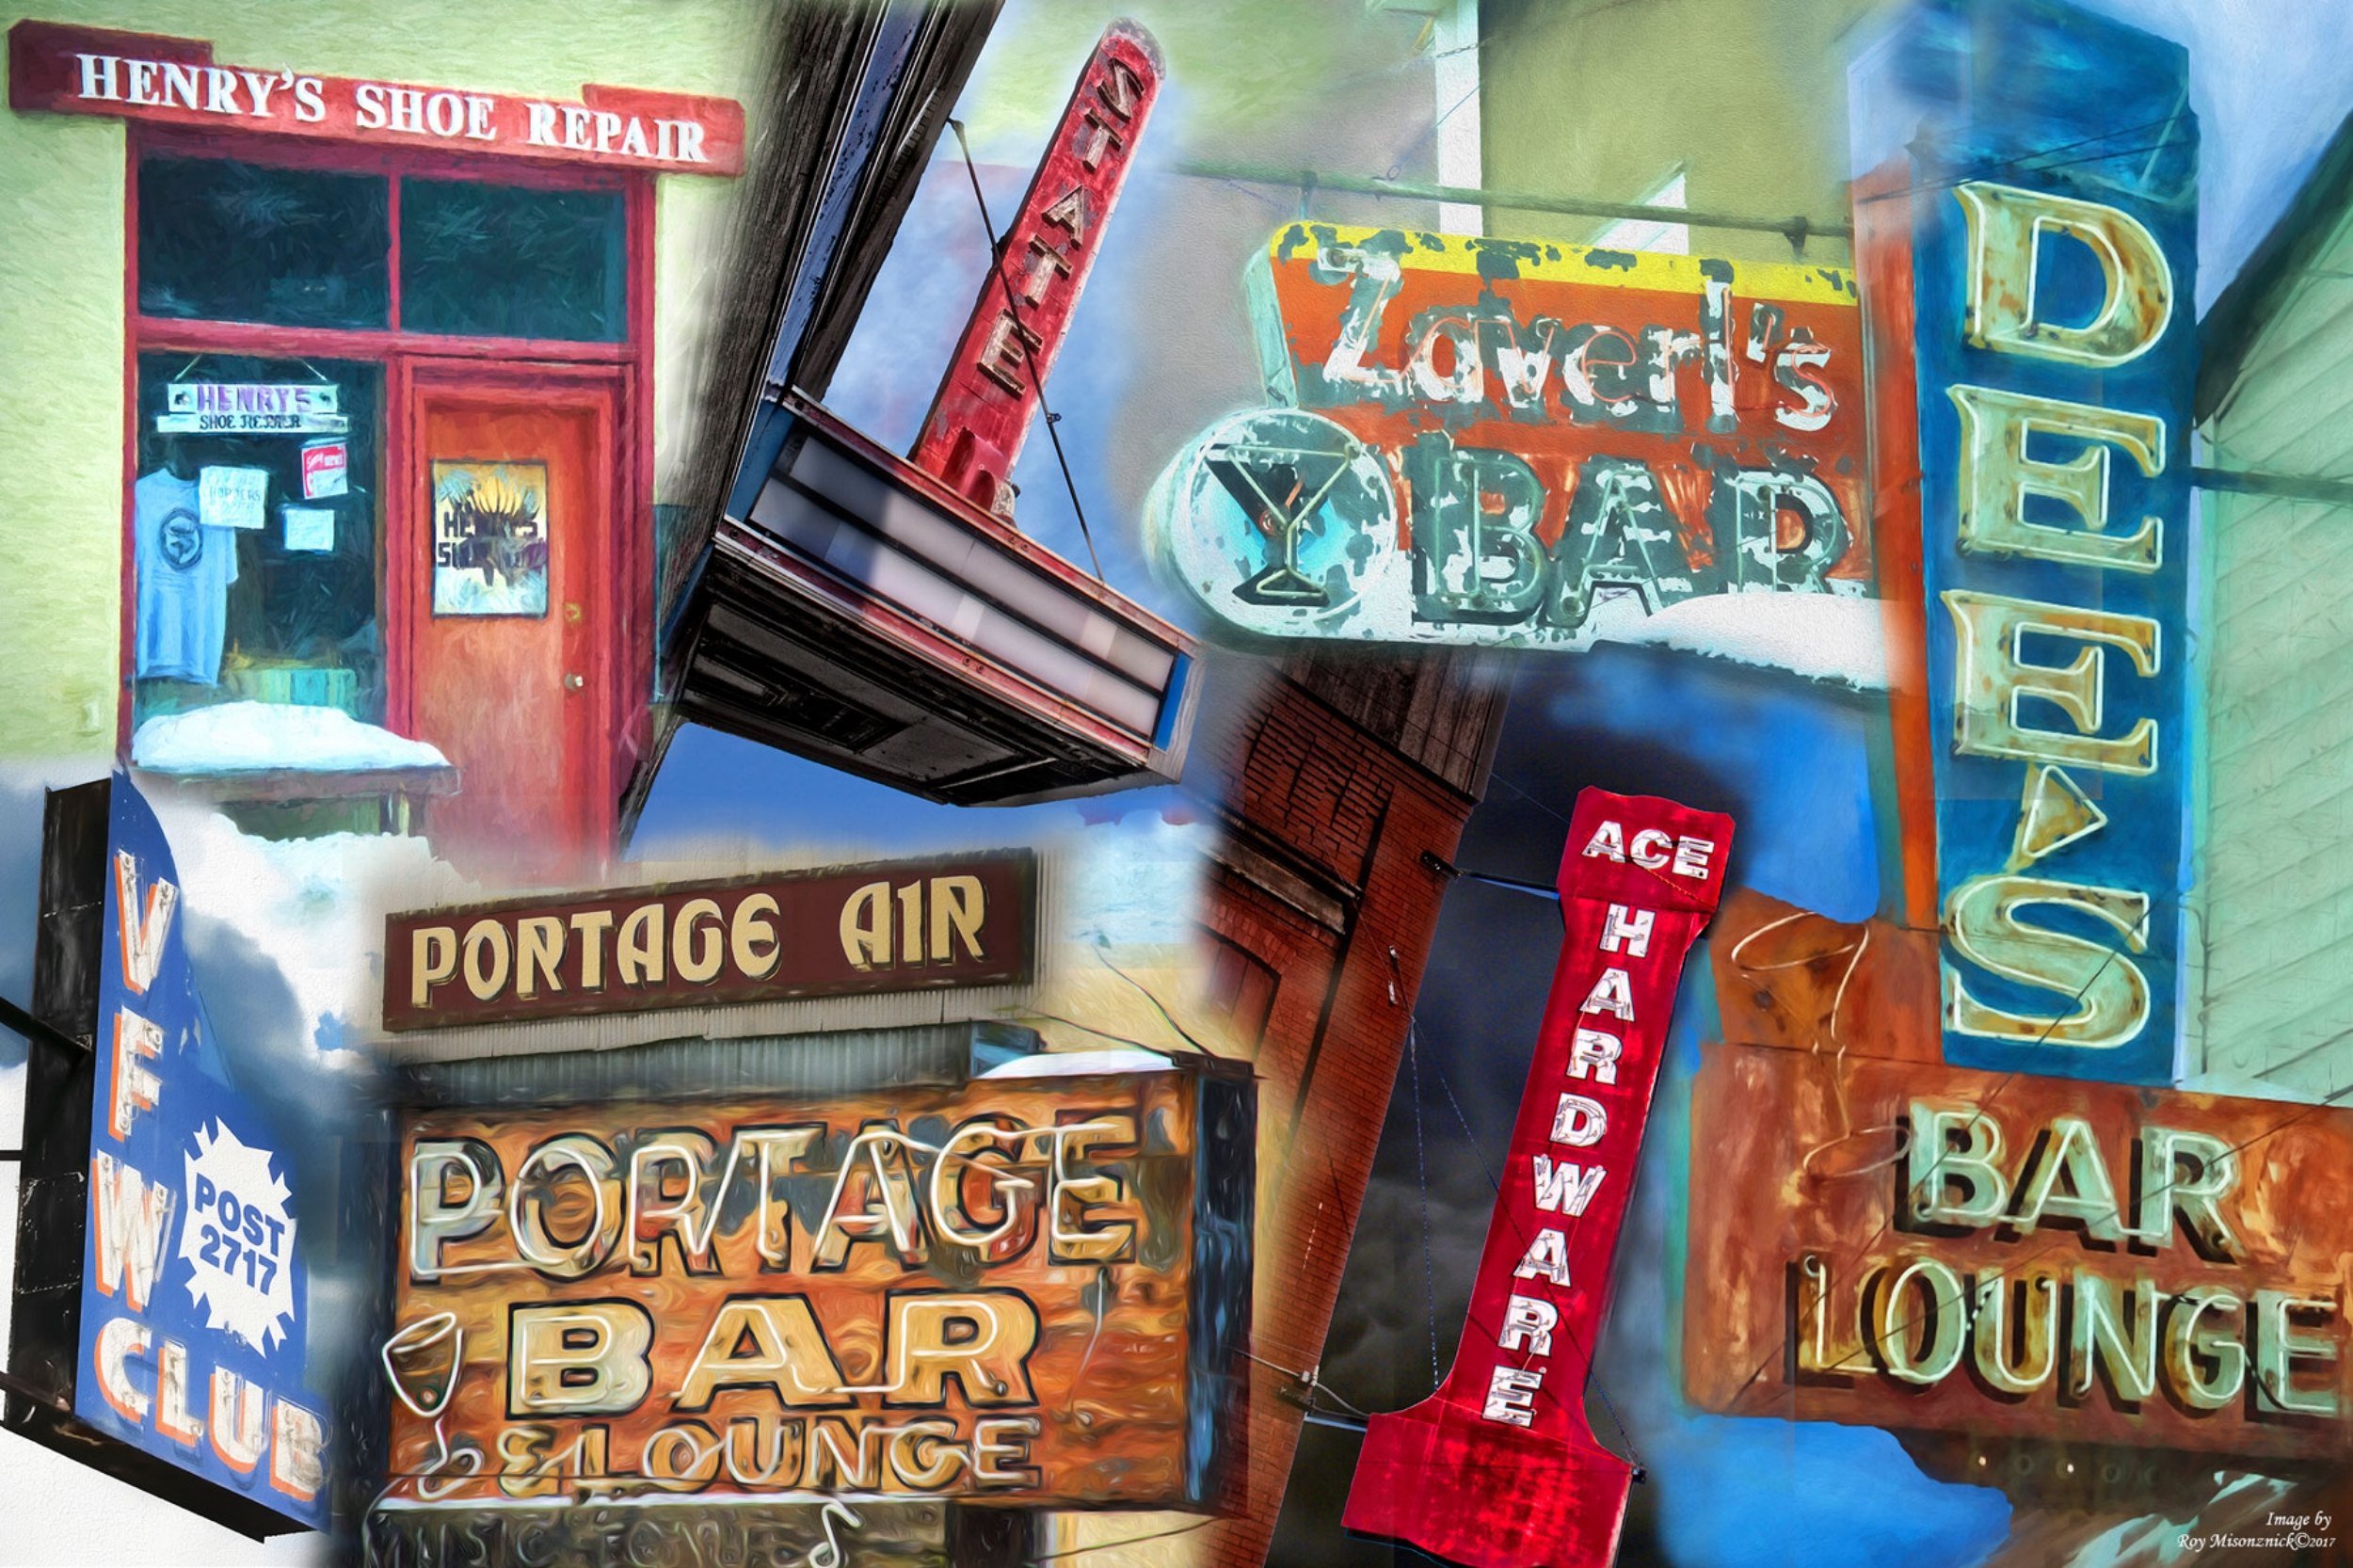 Downtown Ely Historic Signage Artwork/Photography by Roy Misonznick